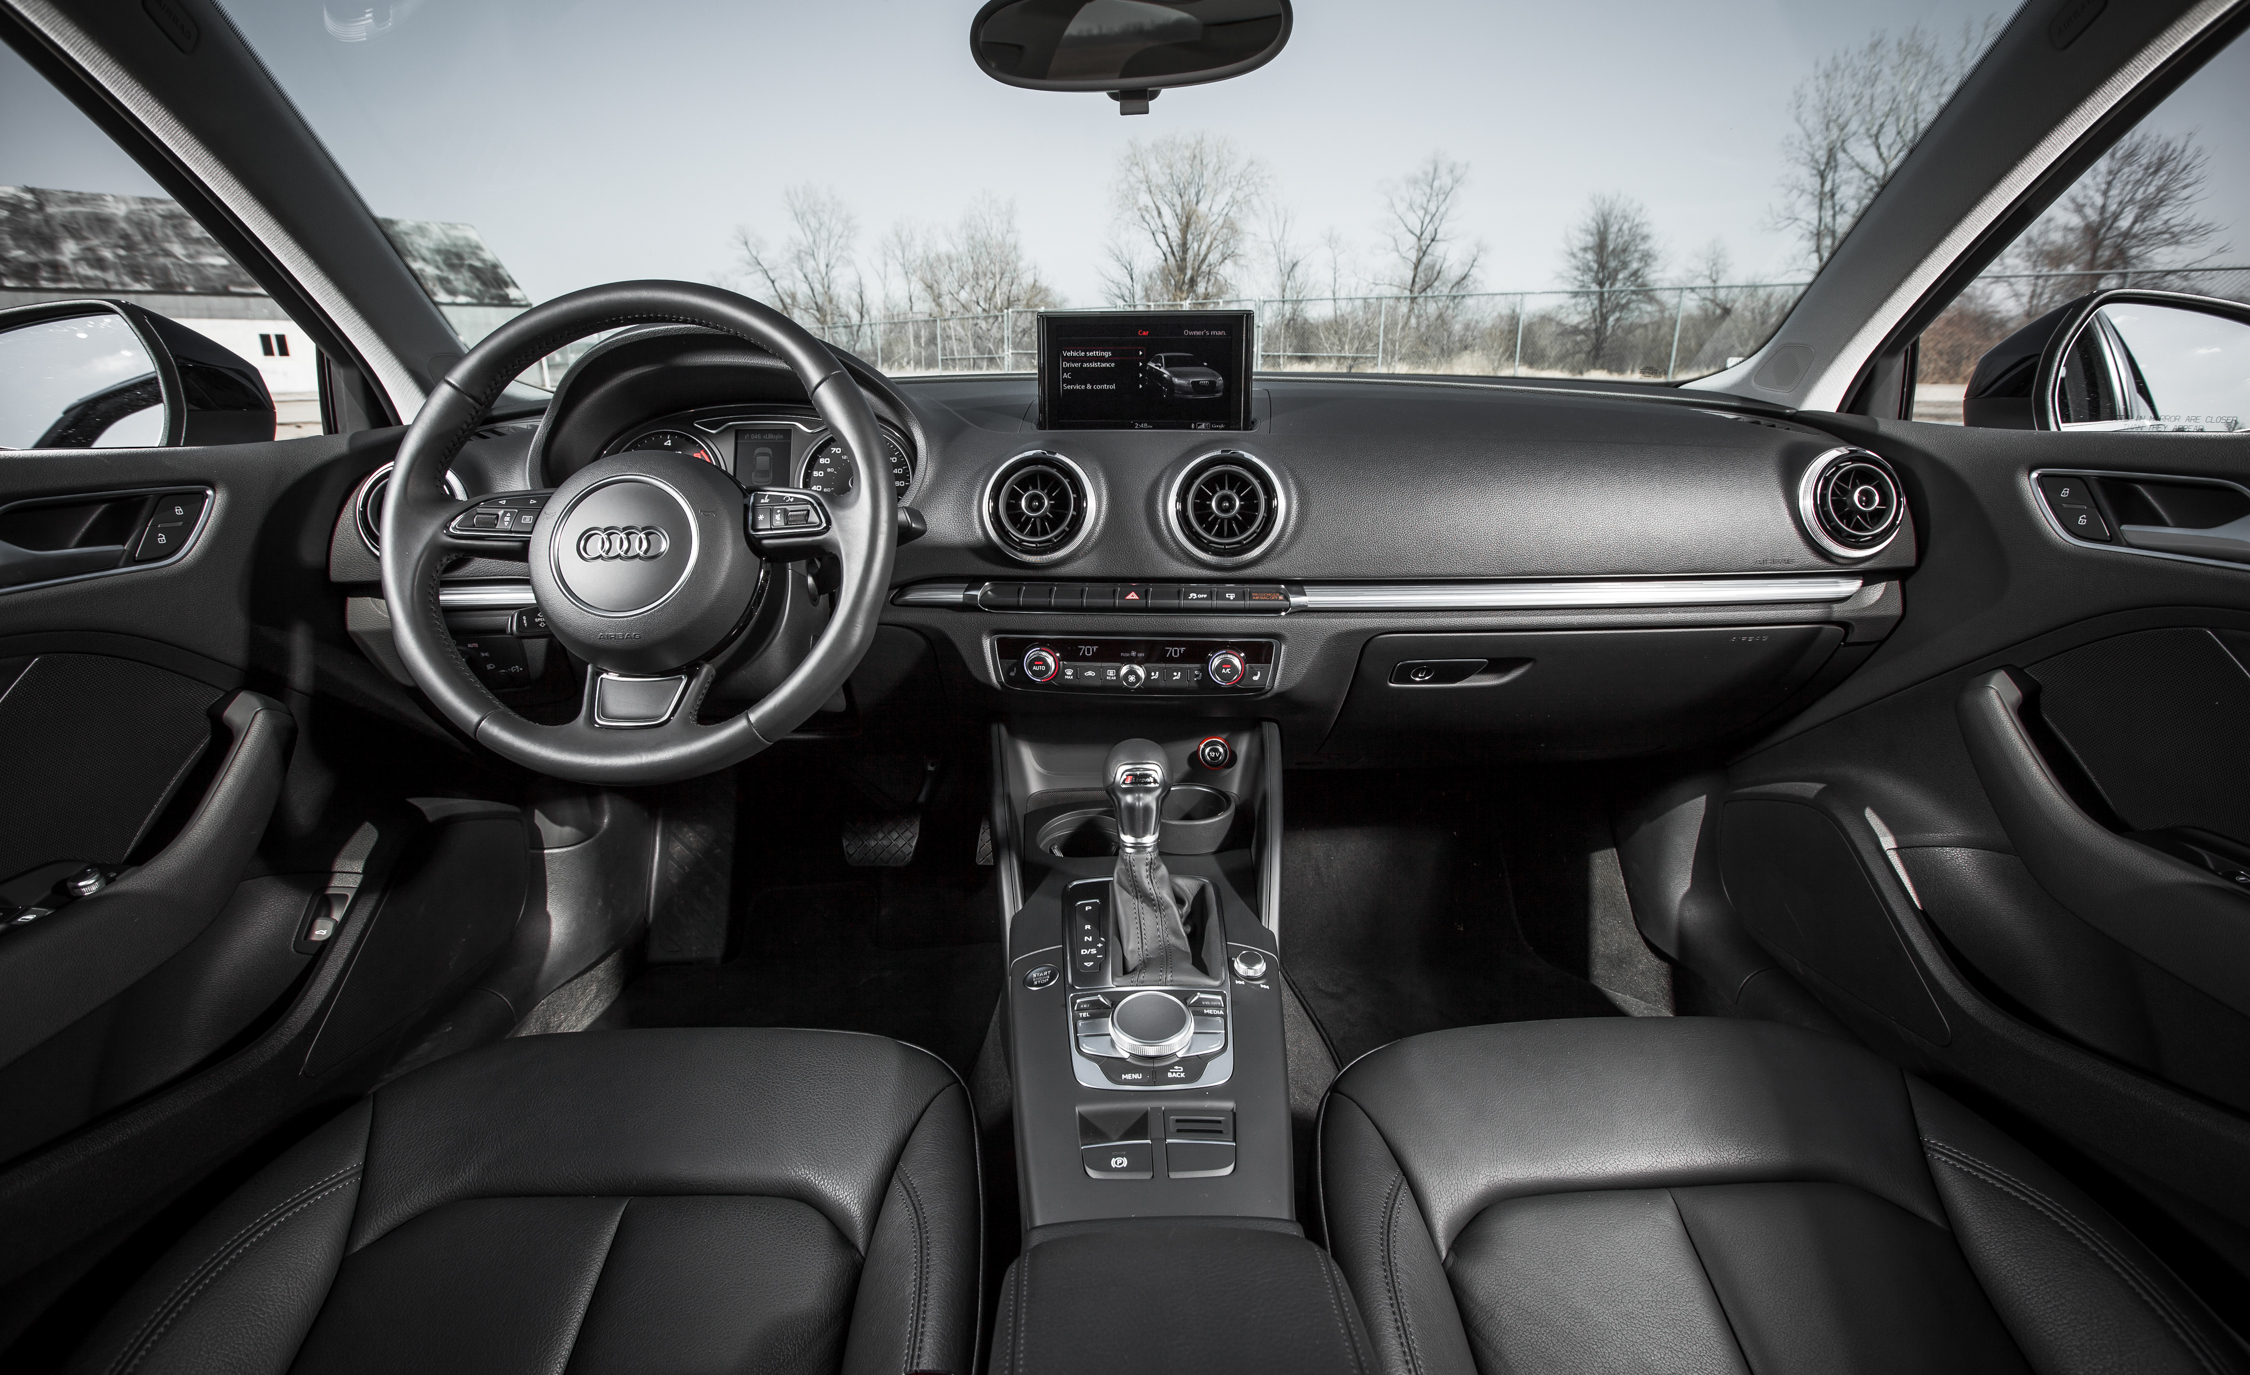 2015 Audi A3 TDI Interior Dashboard (Photo 33 of 50)